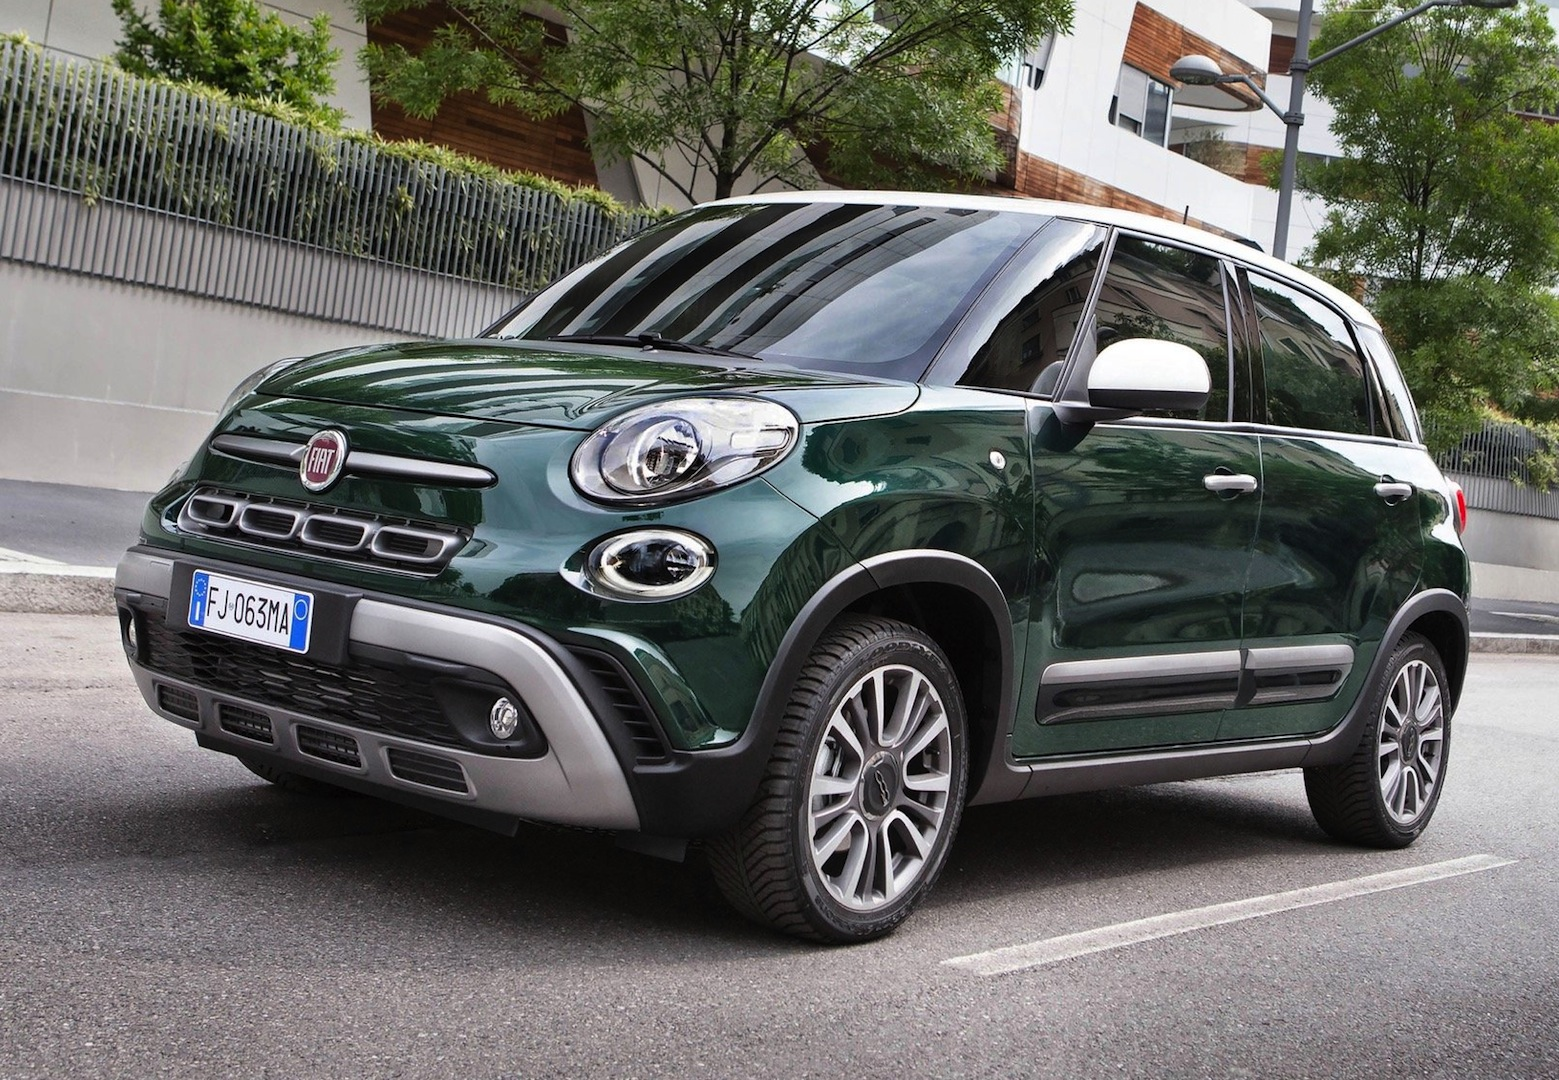 fiat 500l cross 1 3 multijet versatilit a tutto campo motorage new generation. Black Bedroom Furniture Sets. Home Design Ideas